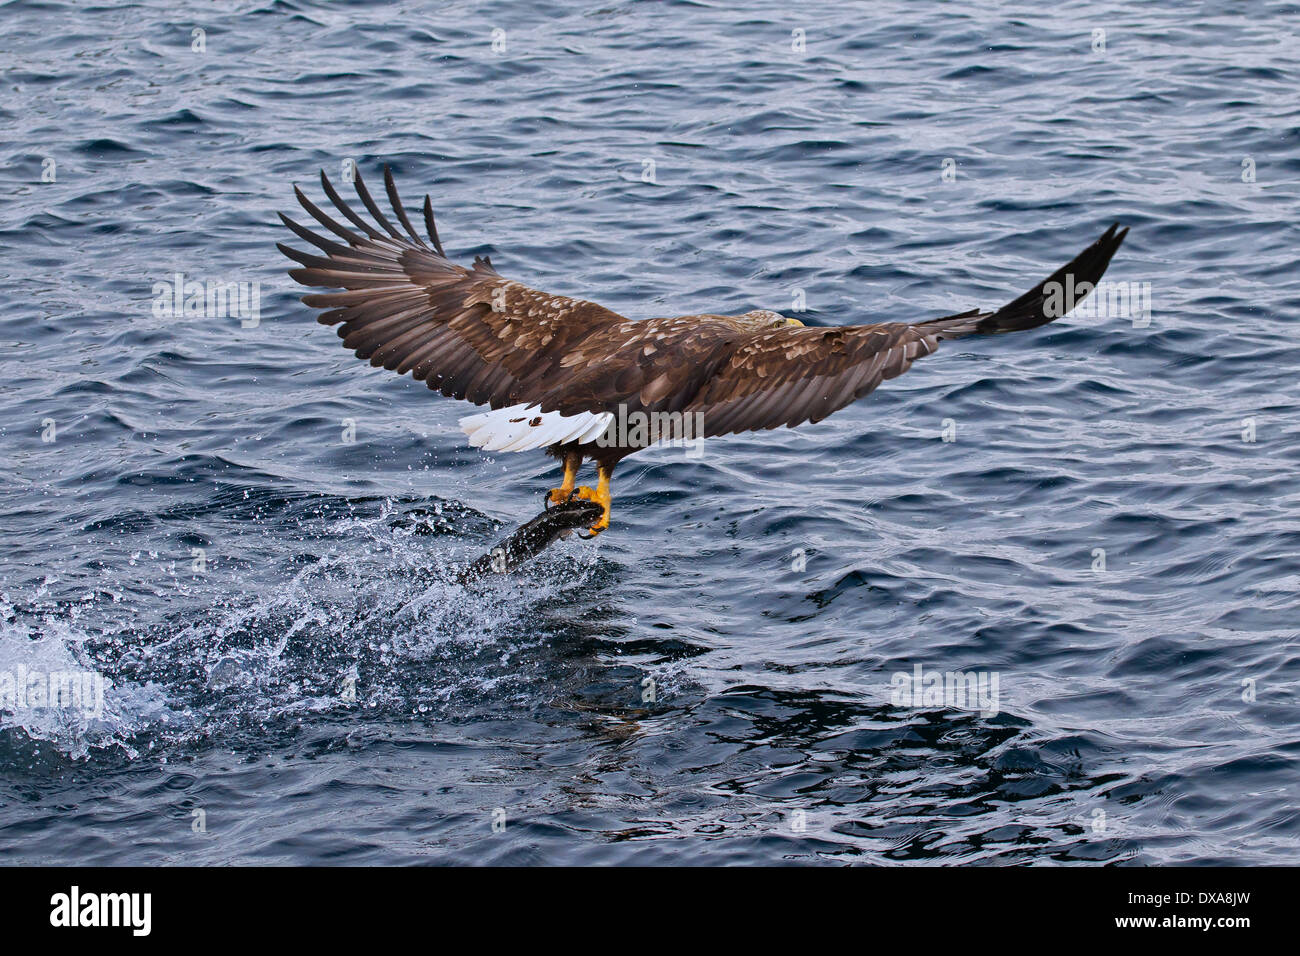 White-tailed Eagle / Sea Eagle / Erne (Haliaeetus albicilla) in flight above the sea catching fish - Stock Image